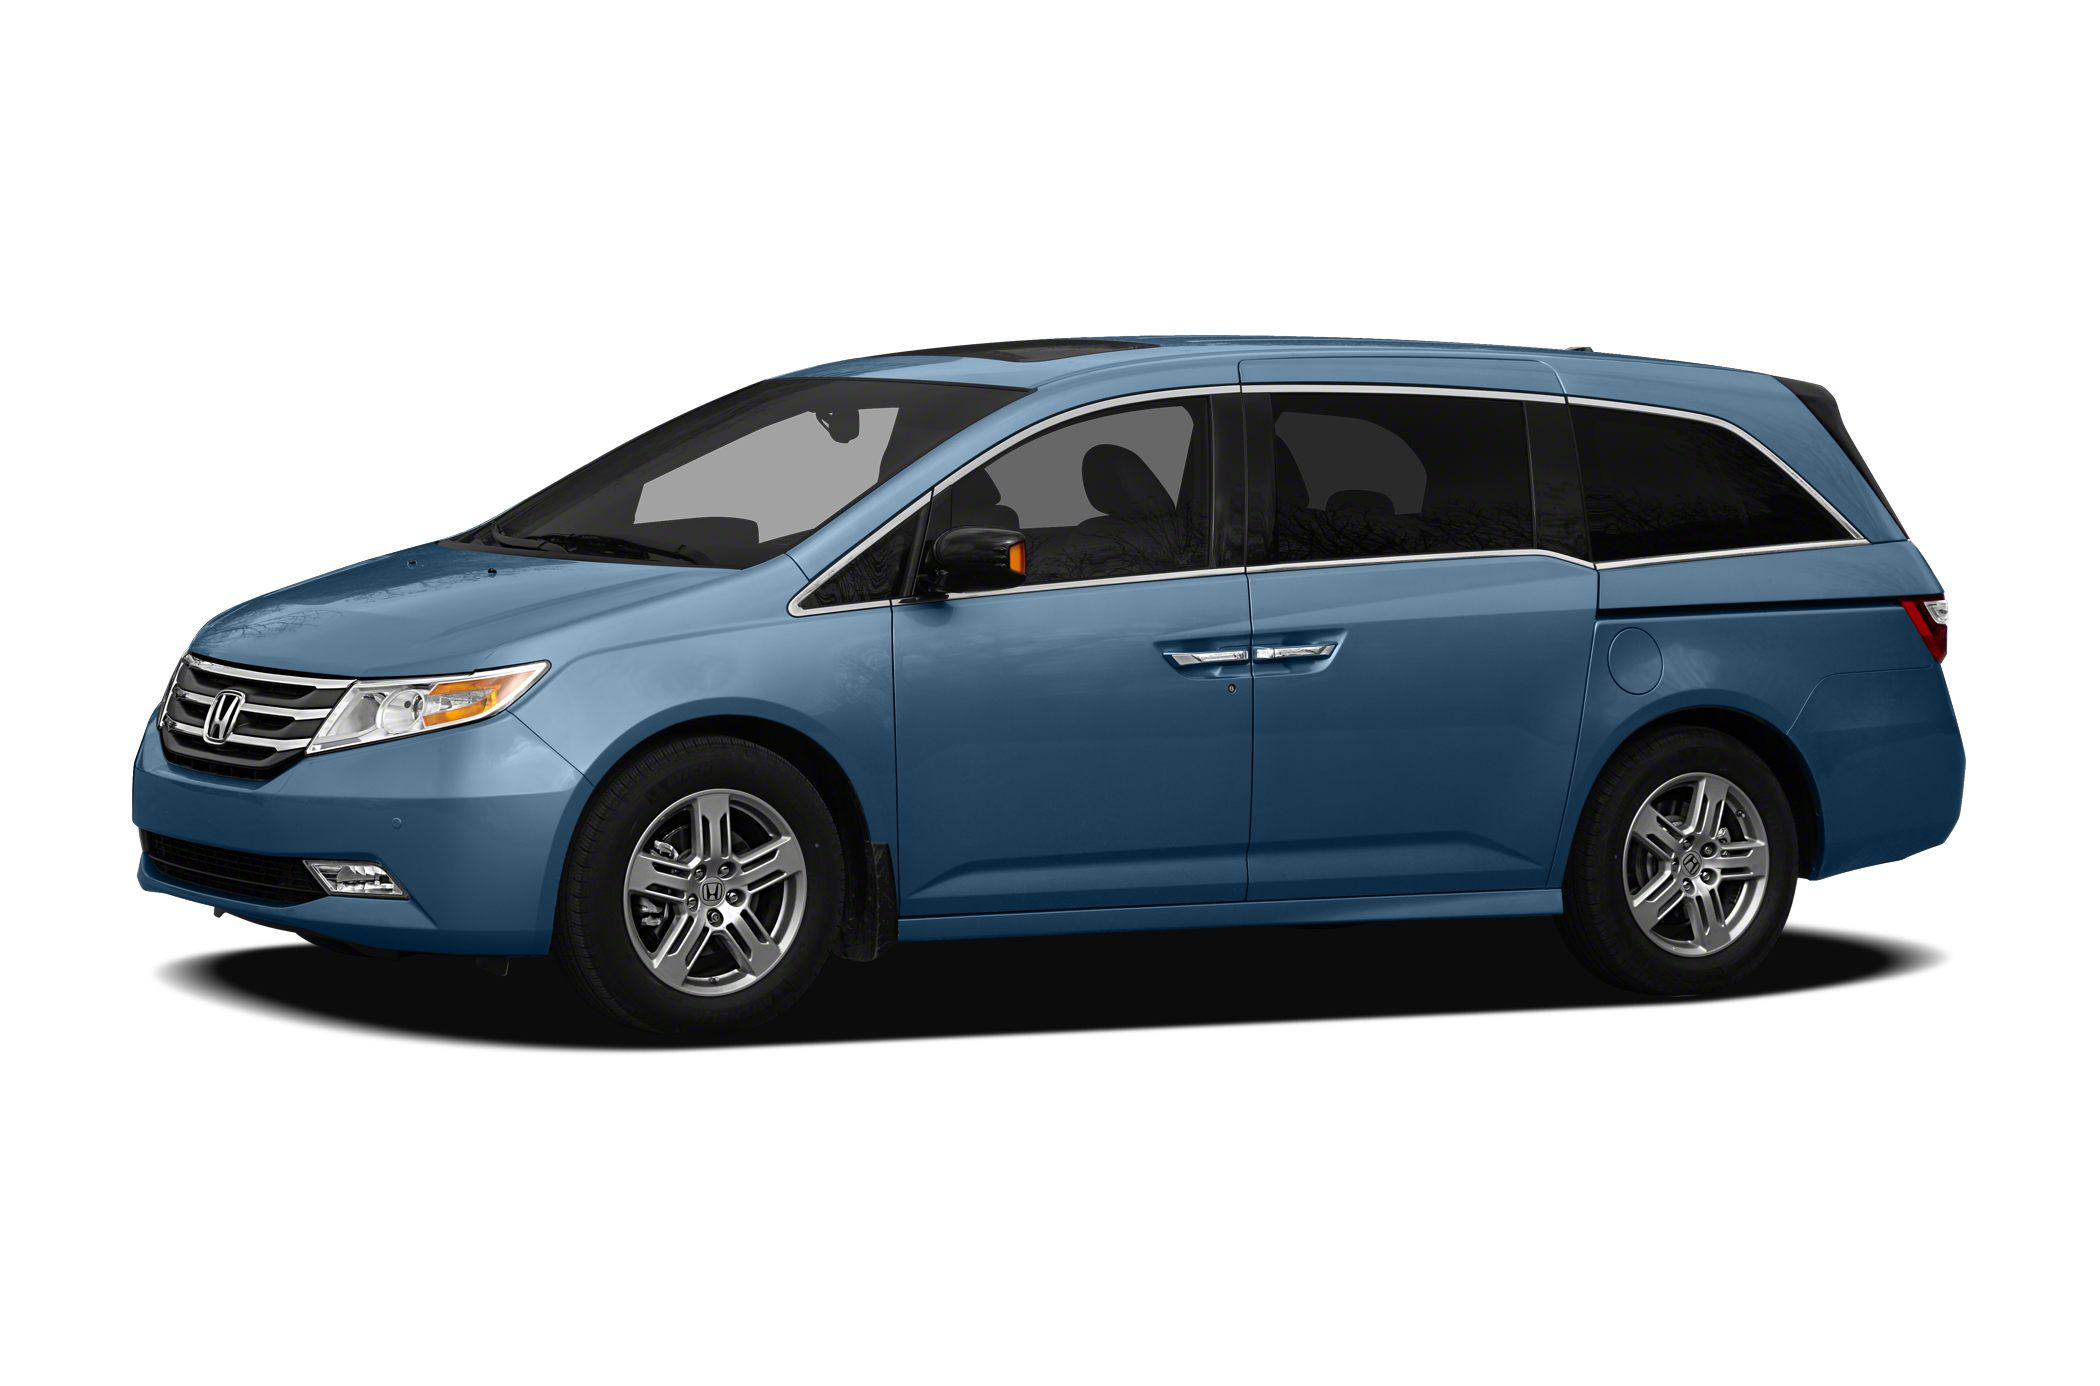 2011 Honda Odyssey EX-L Minivan for sale in Lees Summit for $19,995 with 82,865 miles.